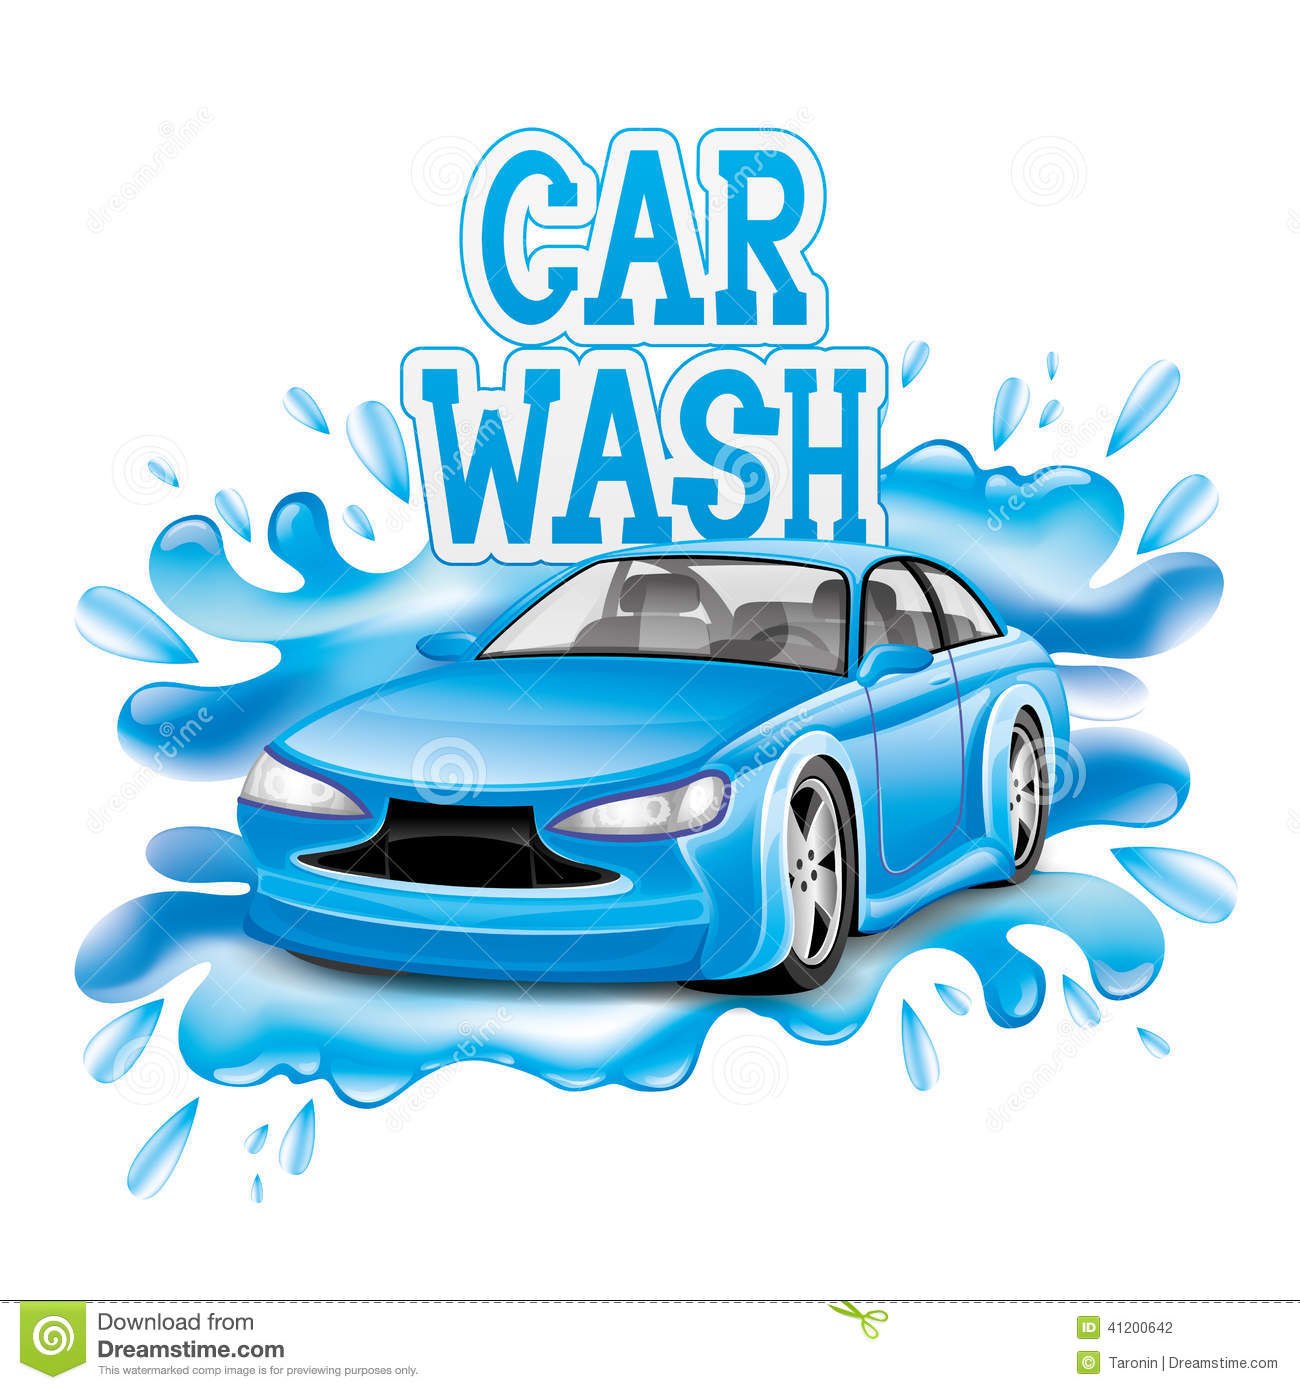 Car Wash Stock Vector Illustration Of Blue Design 41200642